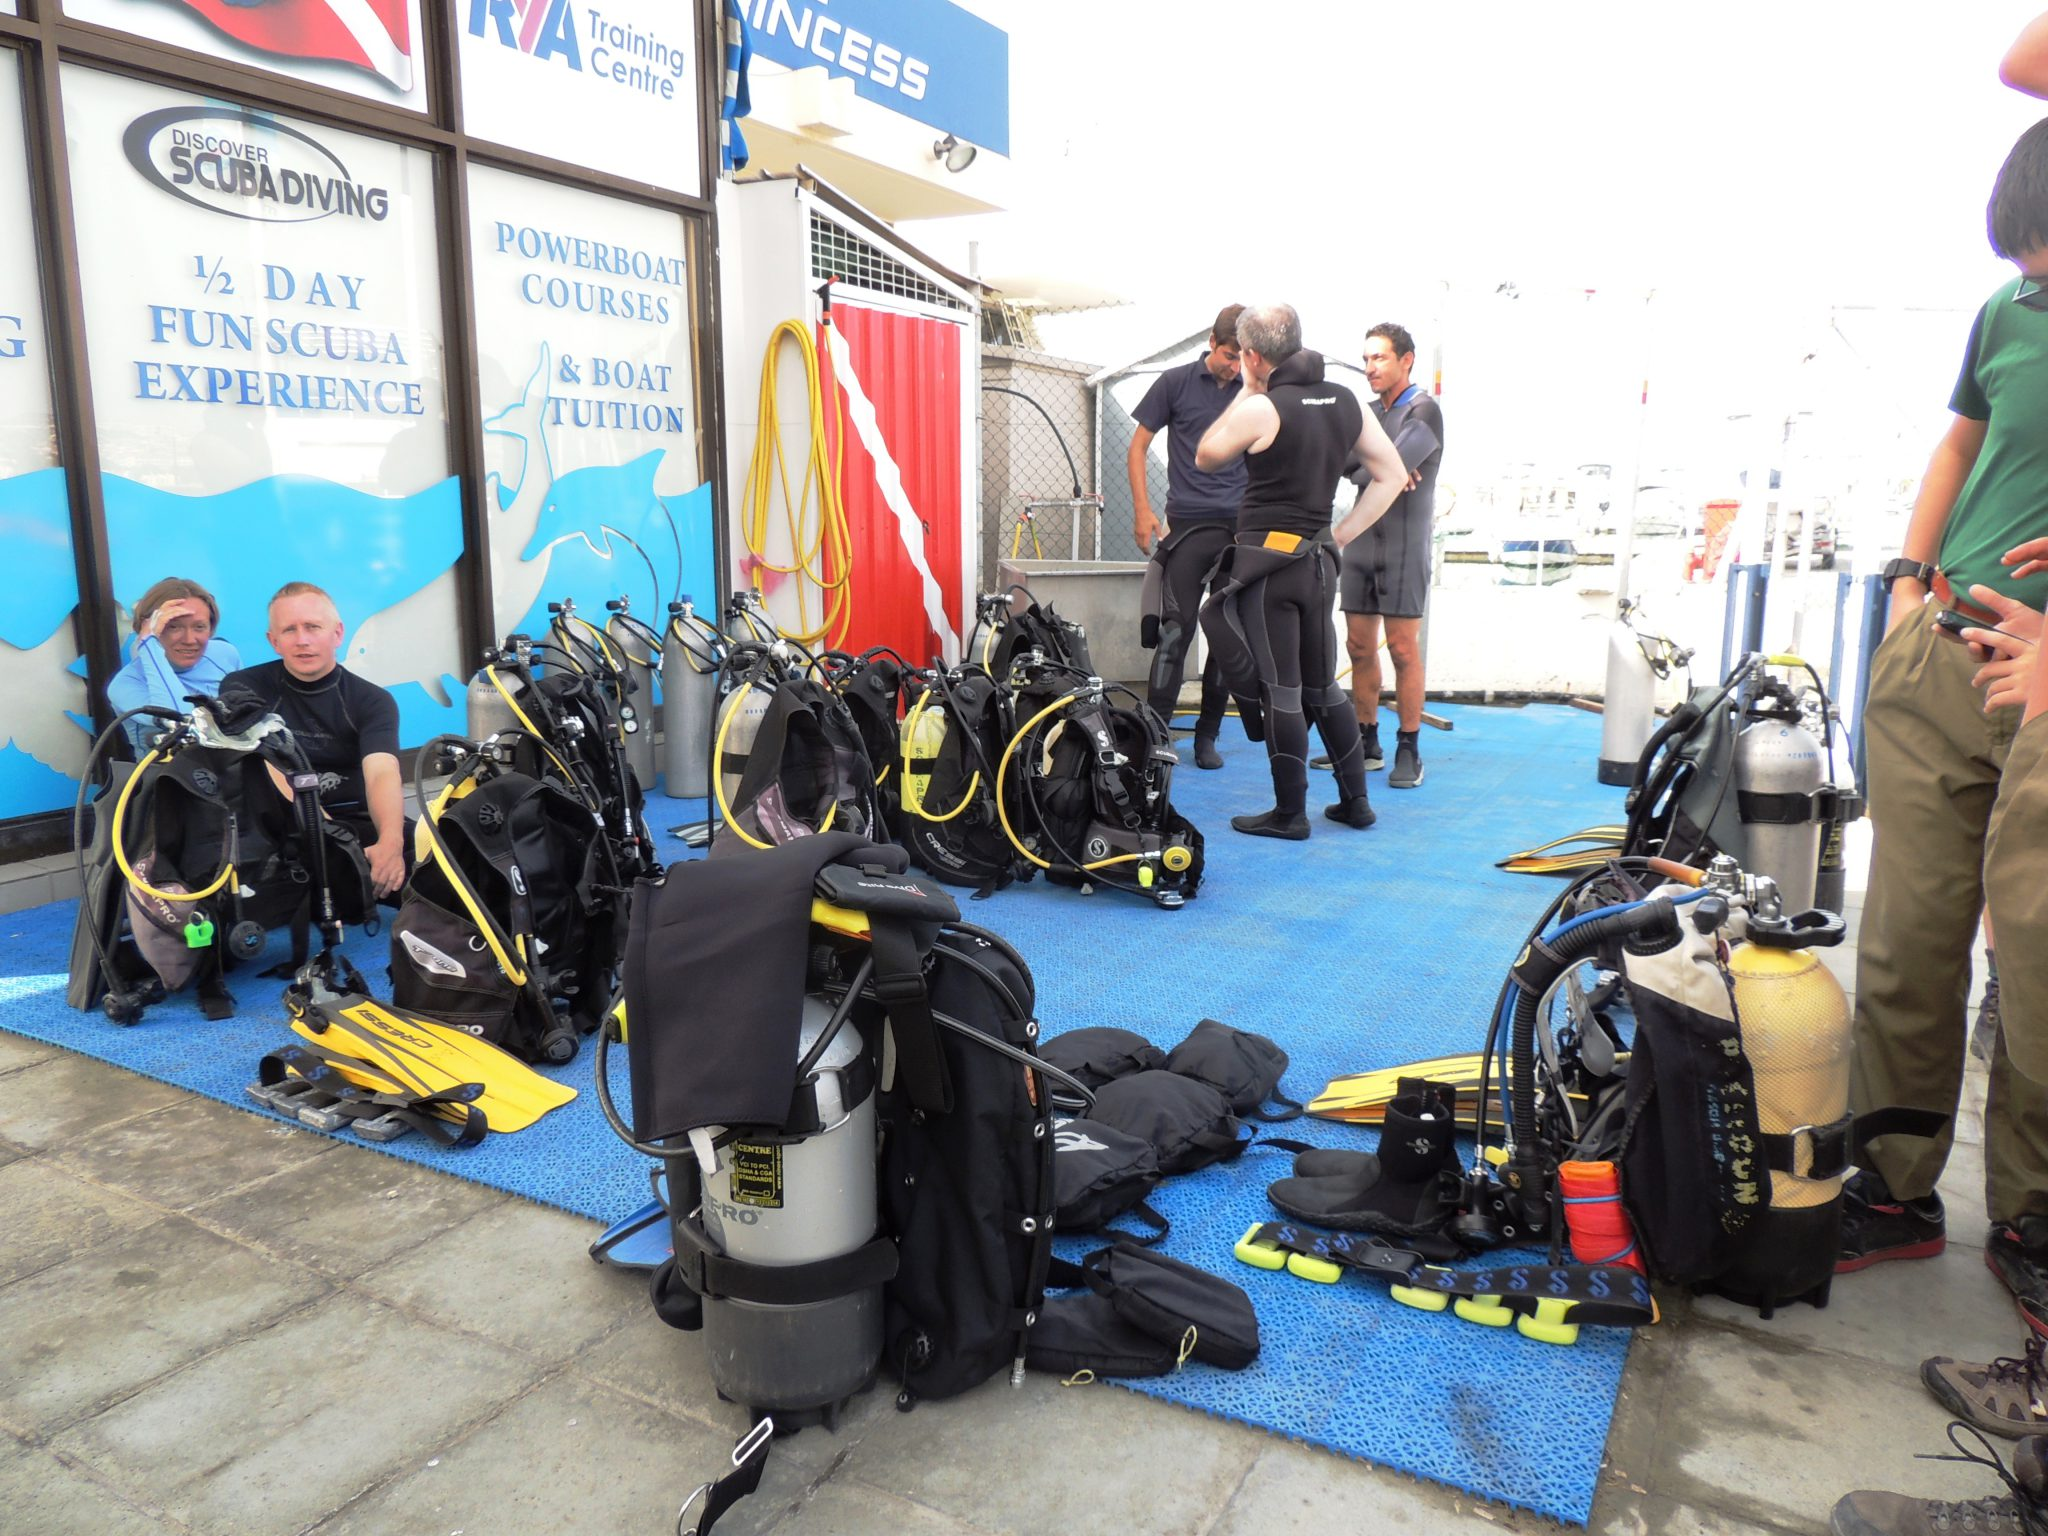 Busy divers, equipment, fins, PADI Go Pro